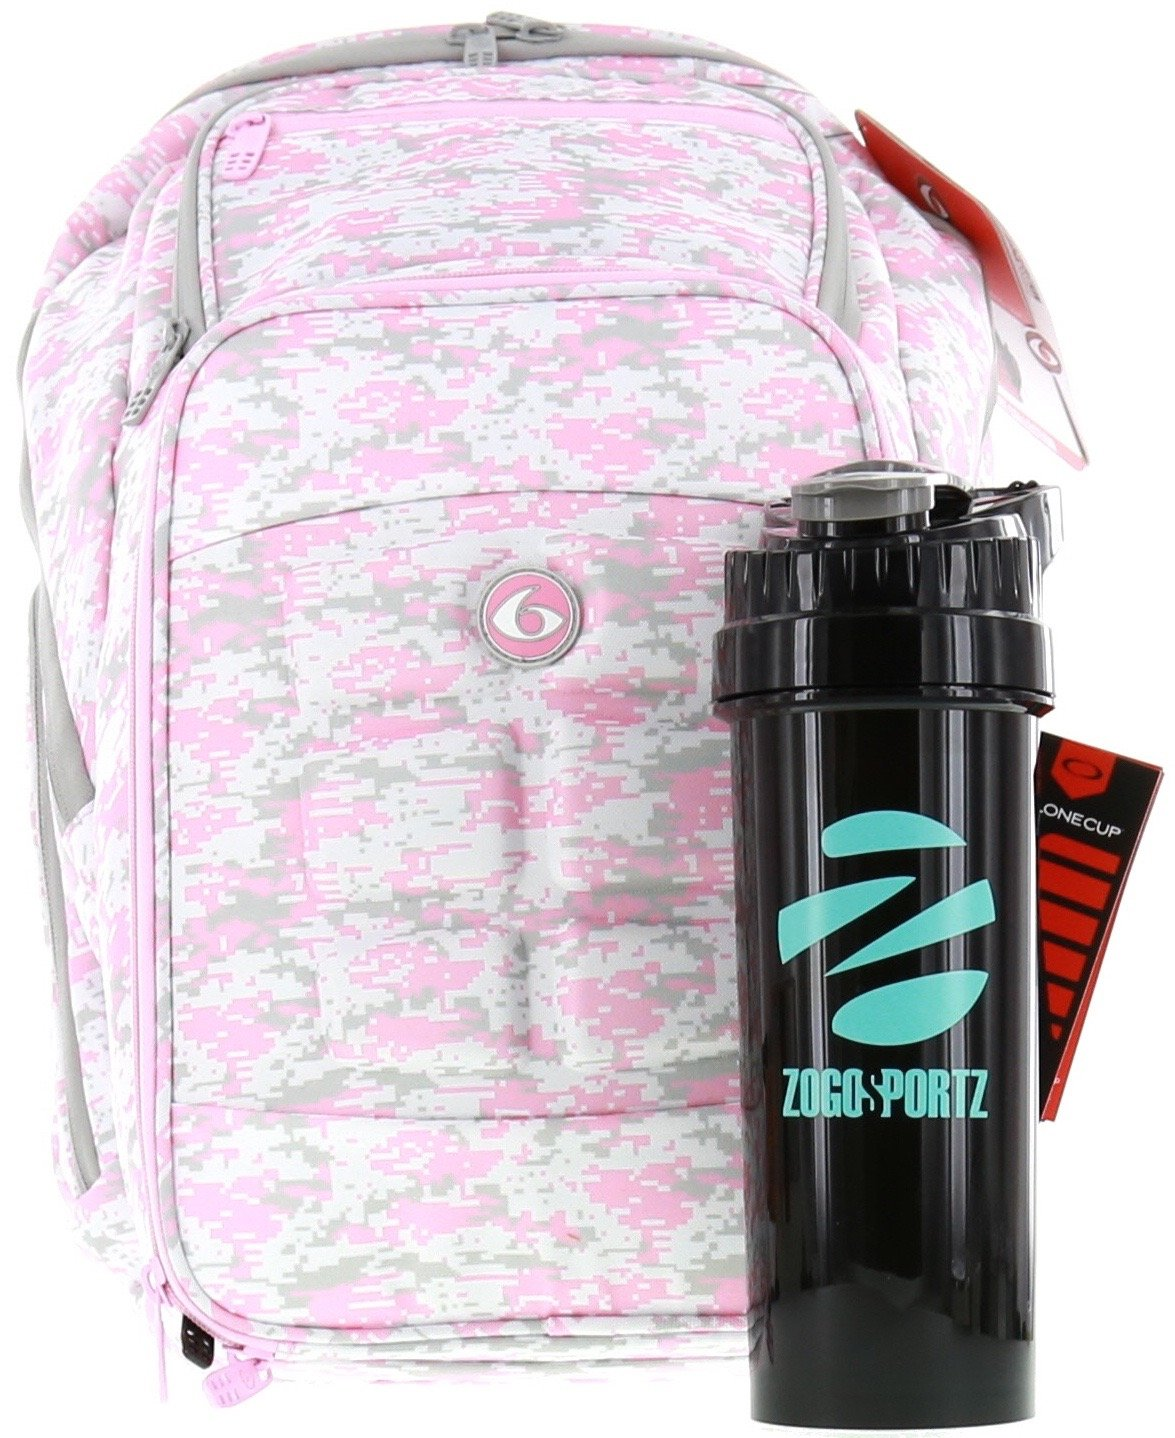 6 Pack Fitness Expedition Backpack W/ Removable Meal Management System 500 Pink & Grey Digital Camo w/ Bonus ZogoSportz Cyclone Shaker by 6 Pack Fitness (Image #1)